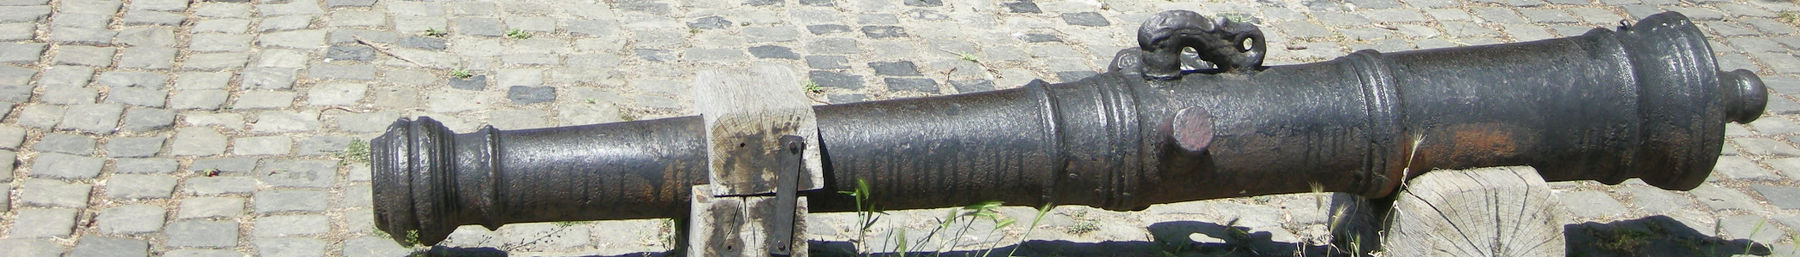 Buda banner Long cannon.jpg